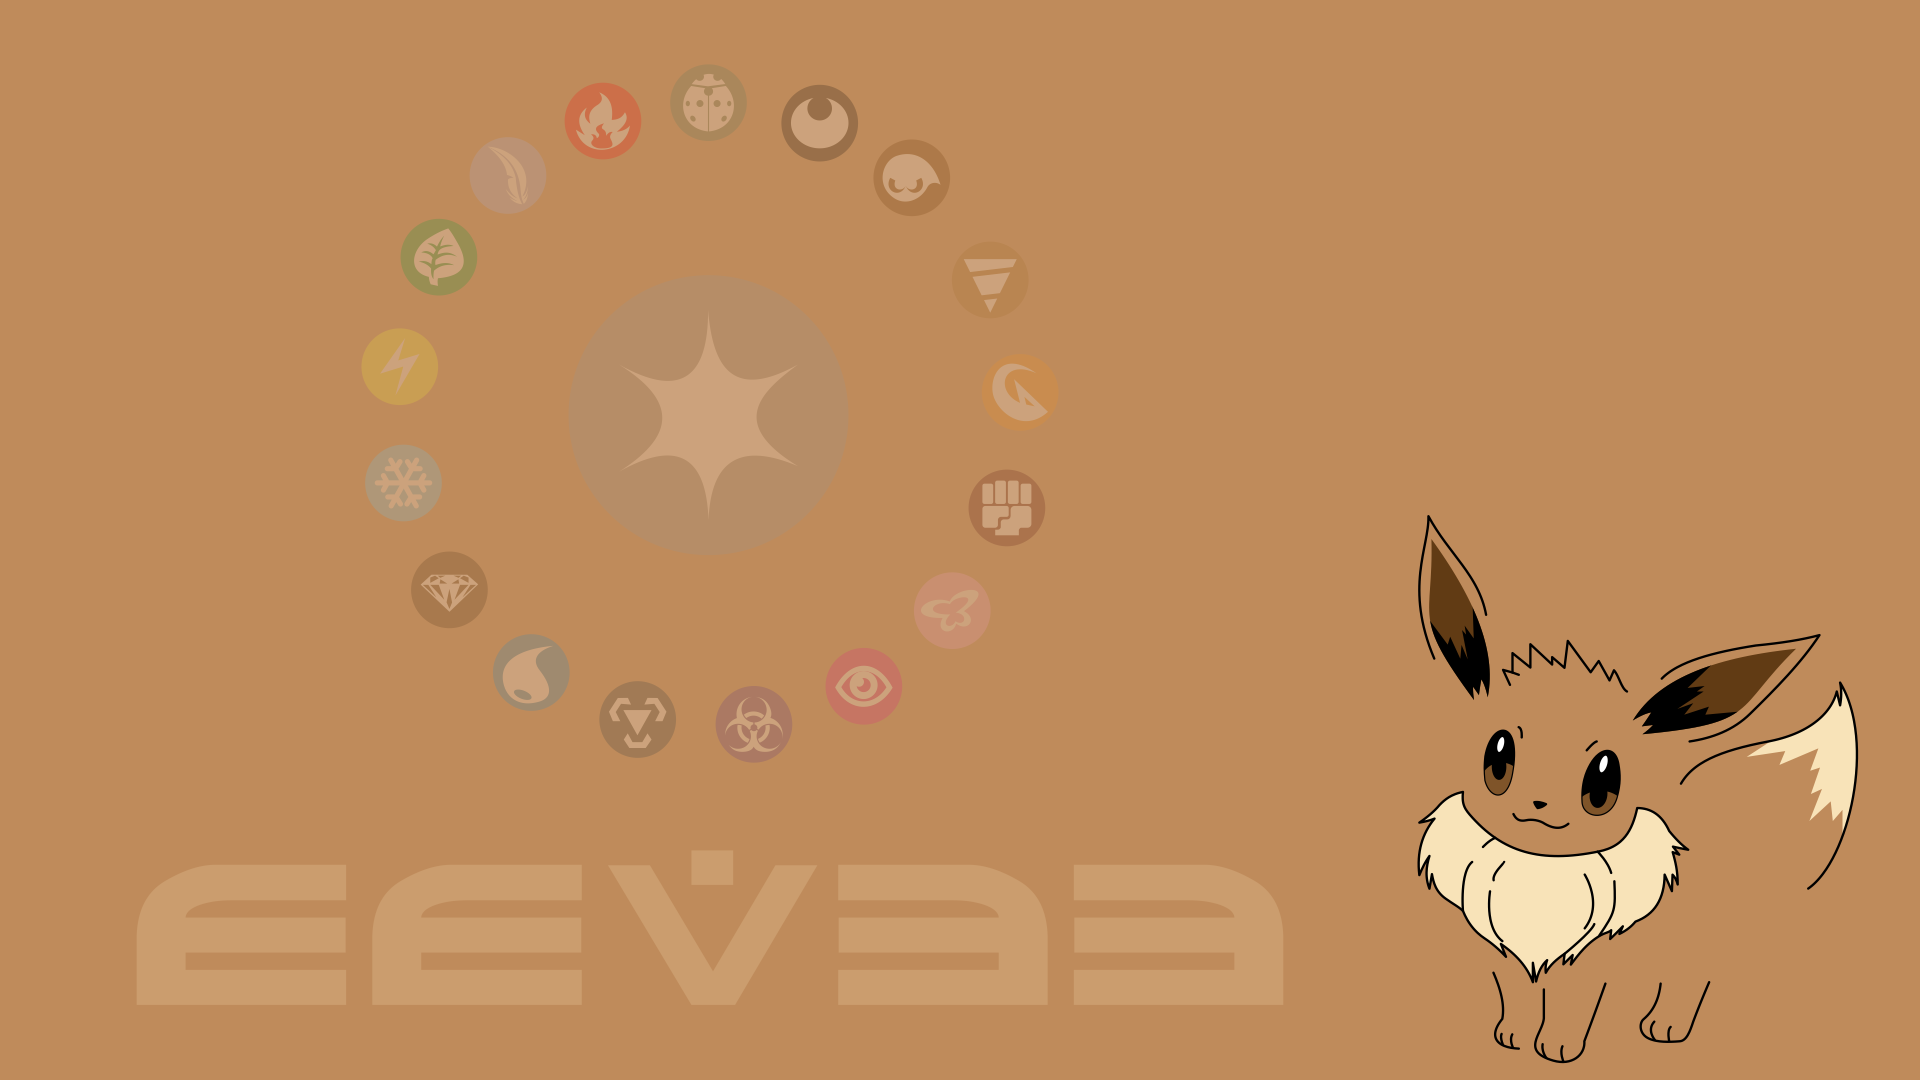 Eevee Wallpaper by juanfrbarros on DeviantArt